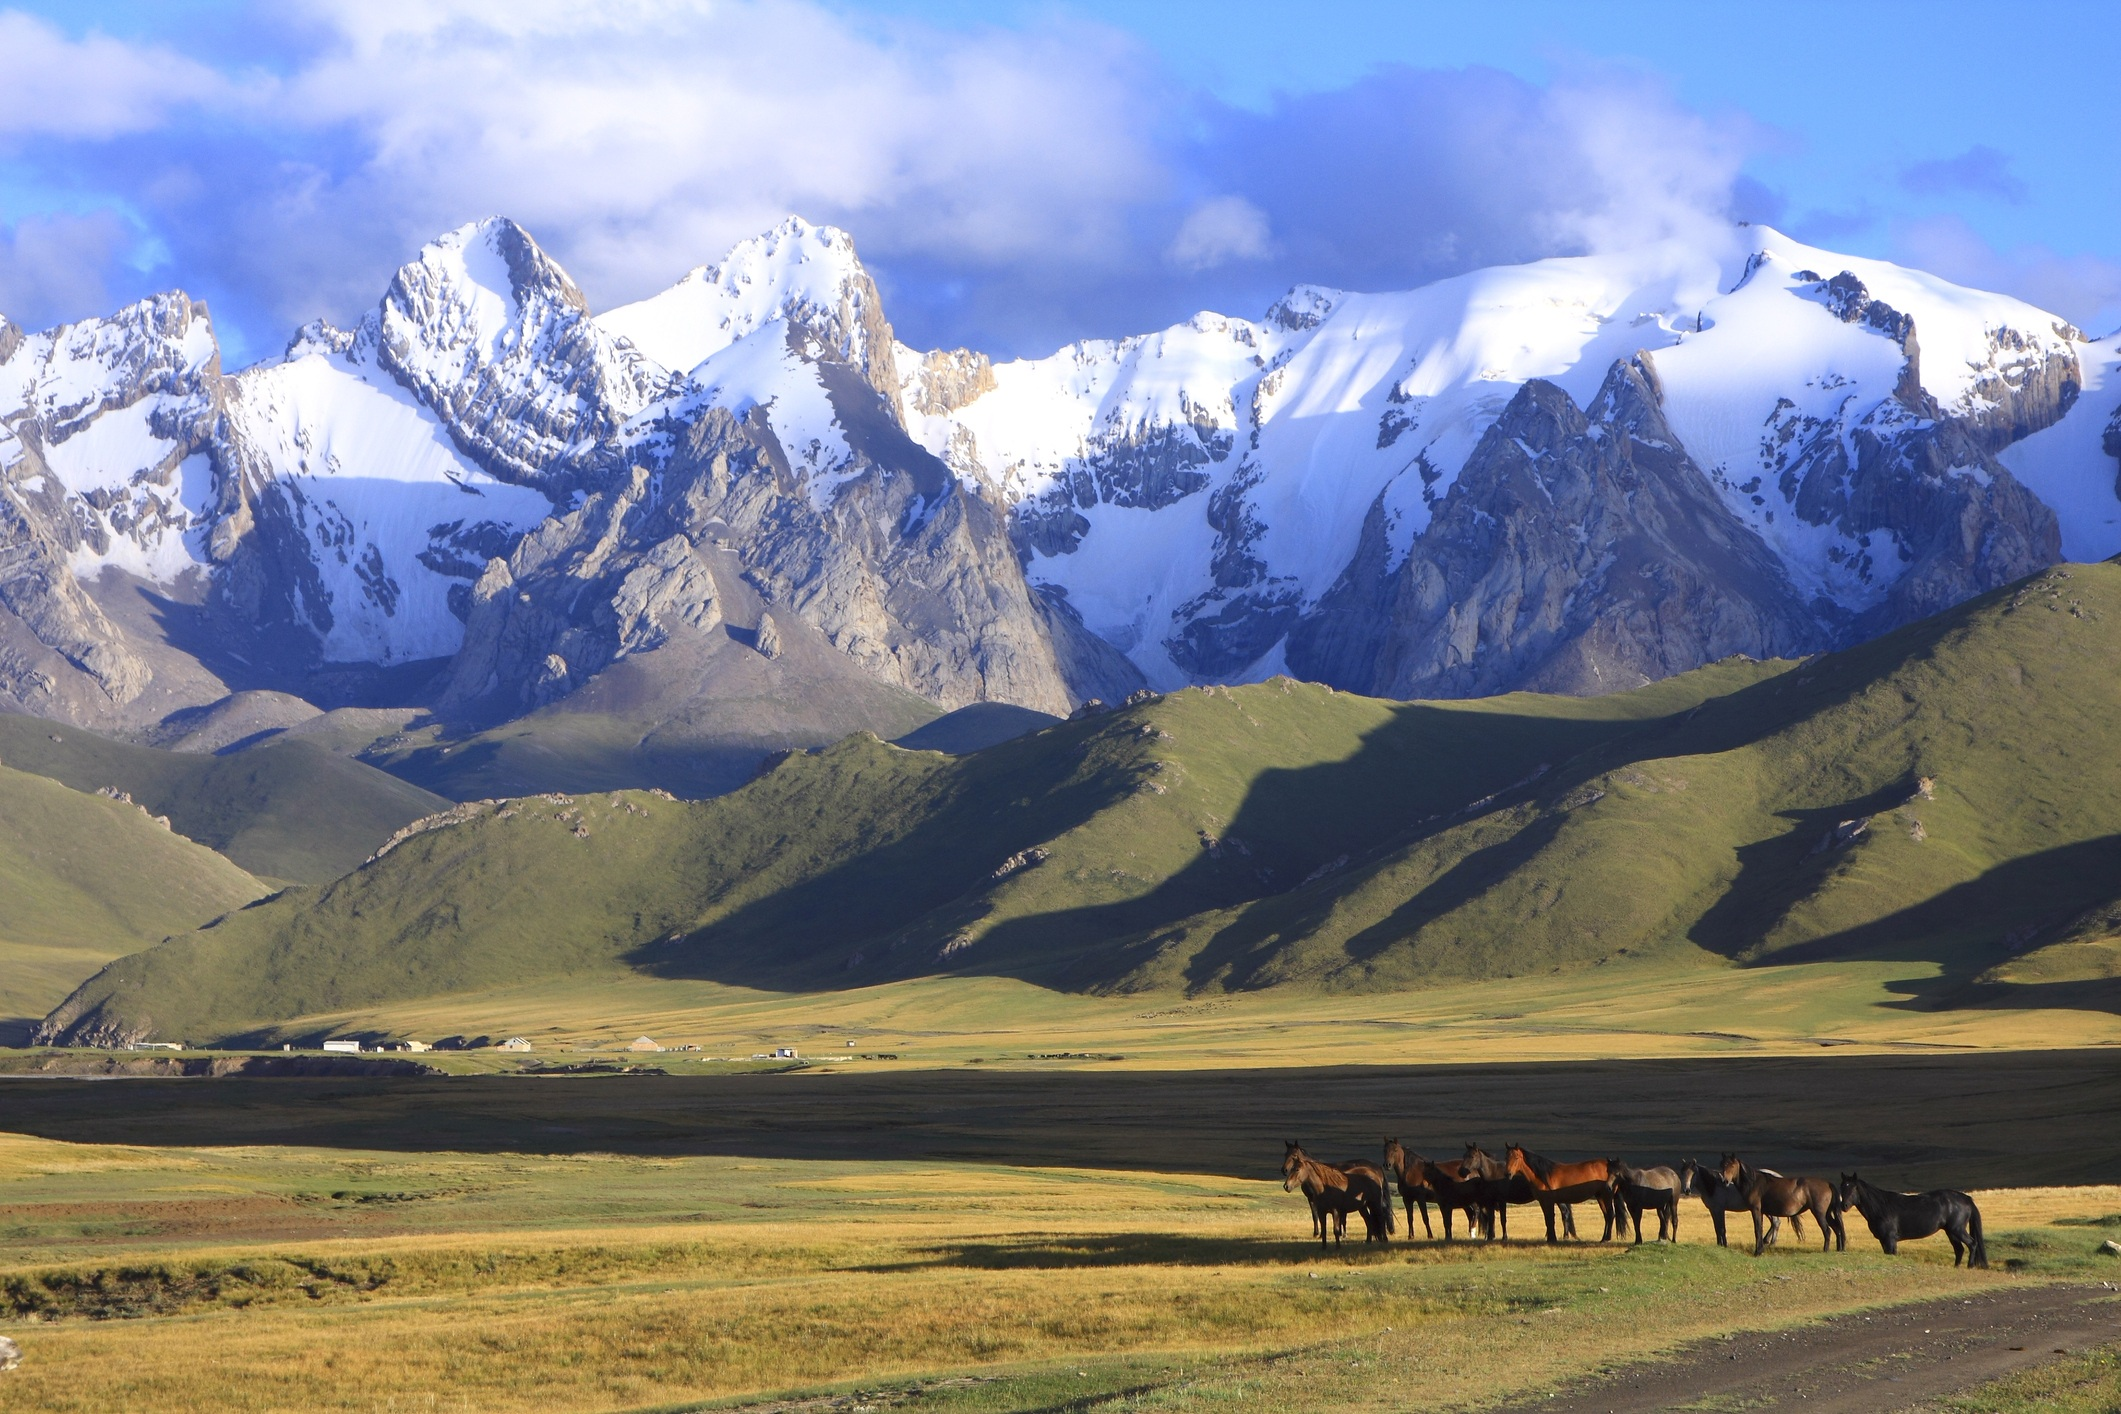 horse and mountain landscape of Kyrgyzstan